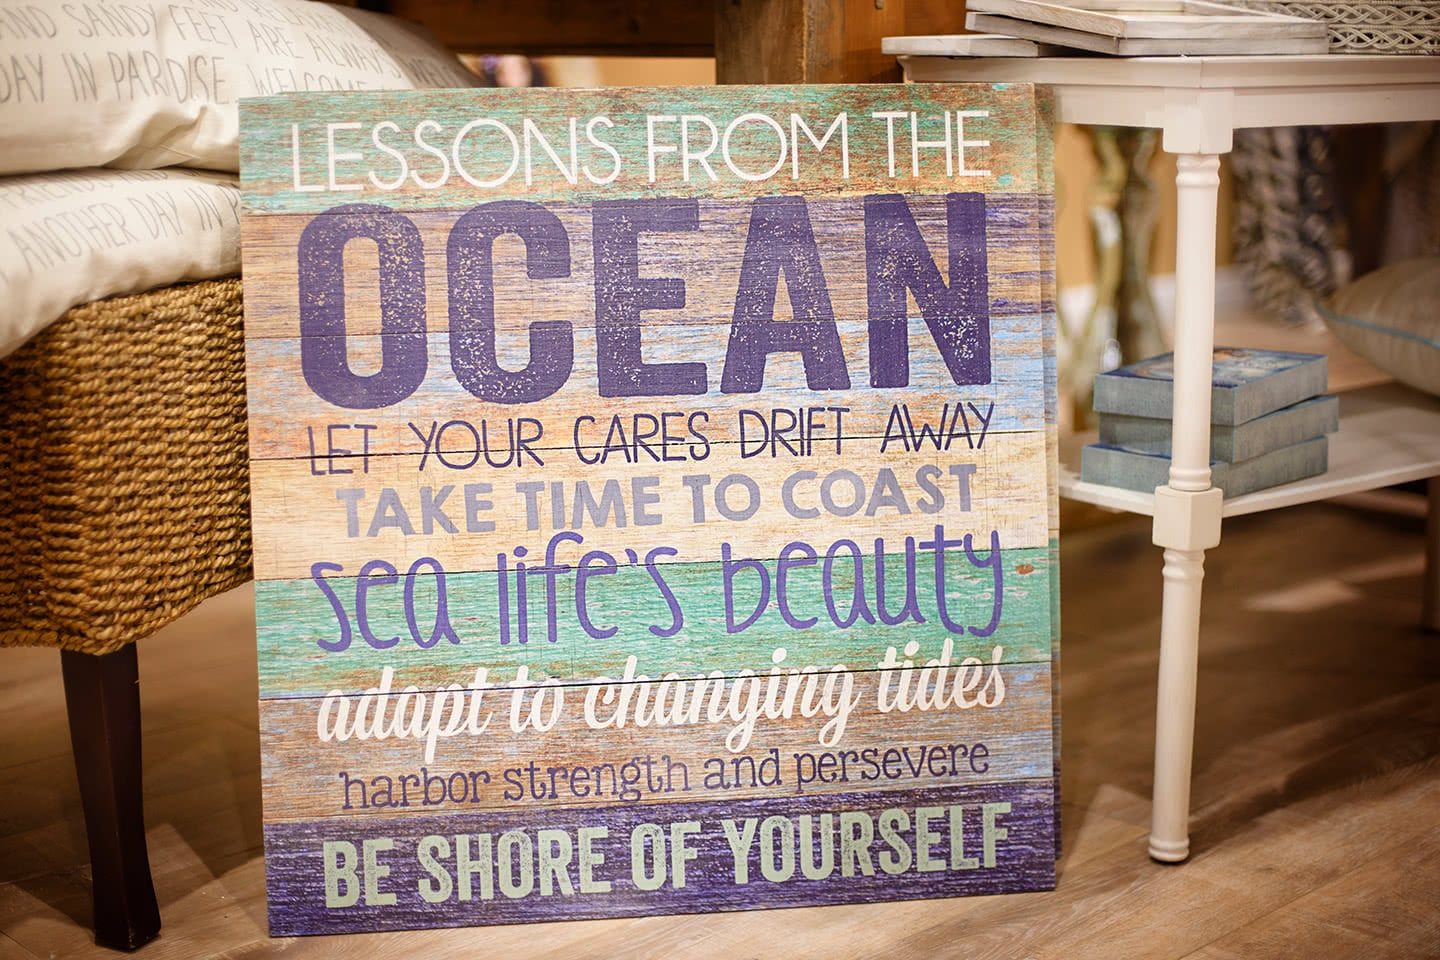 Lessons from the Ocean Sayings